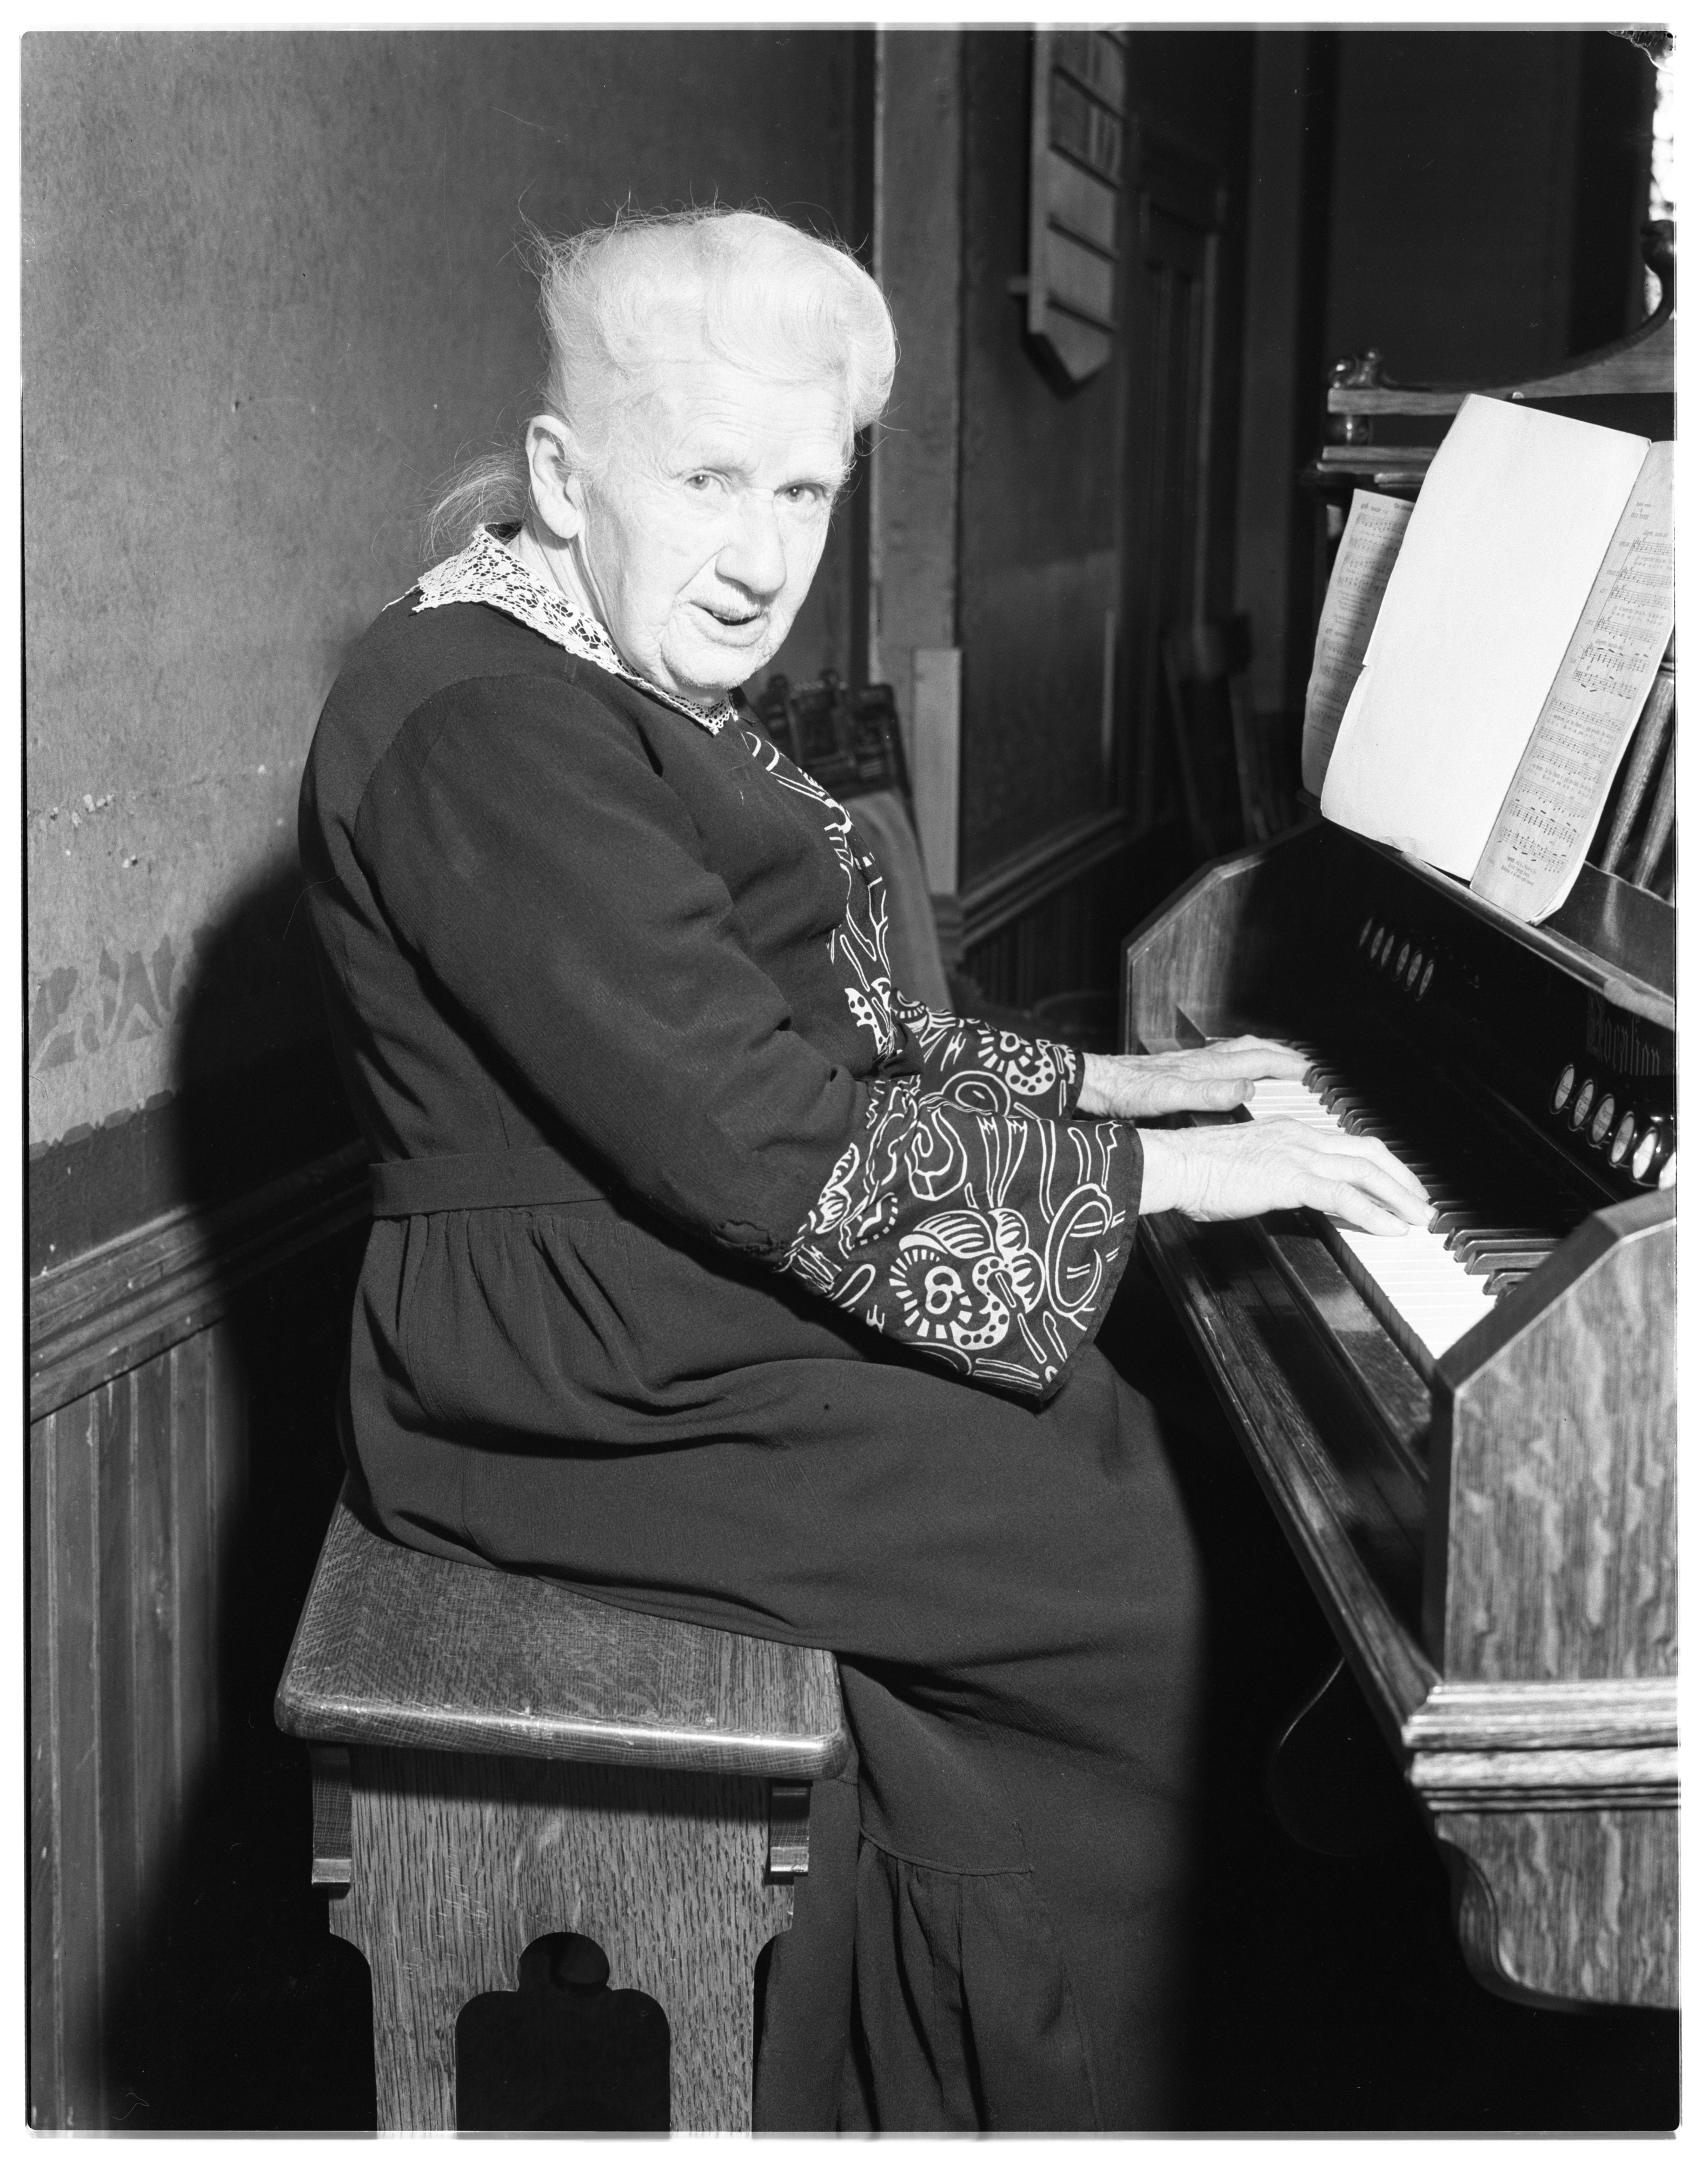 Mrs. Standorough, Organist at 89, South Lyon, March 1937 image